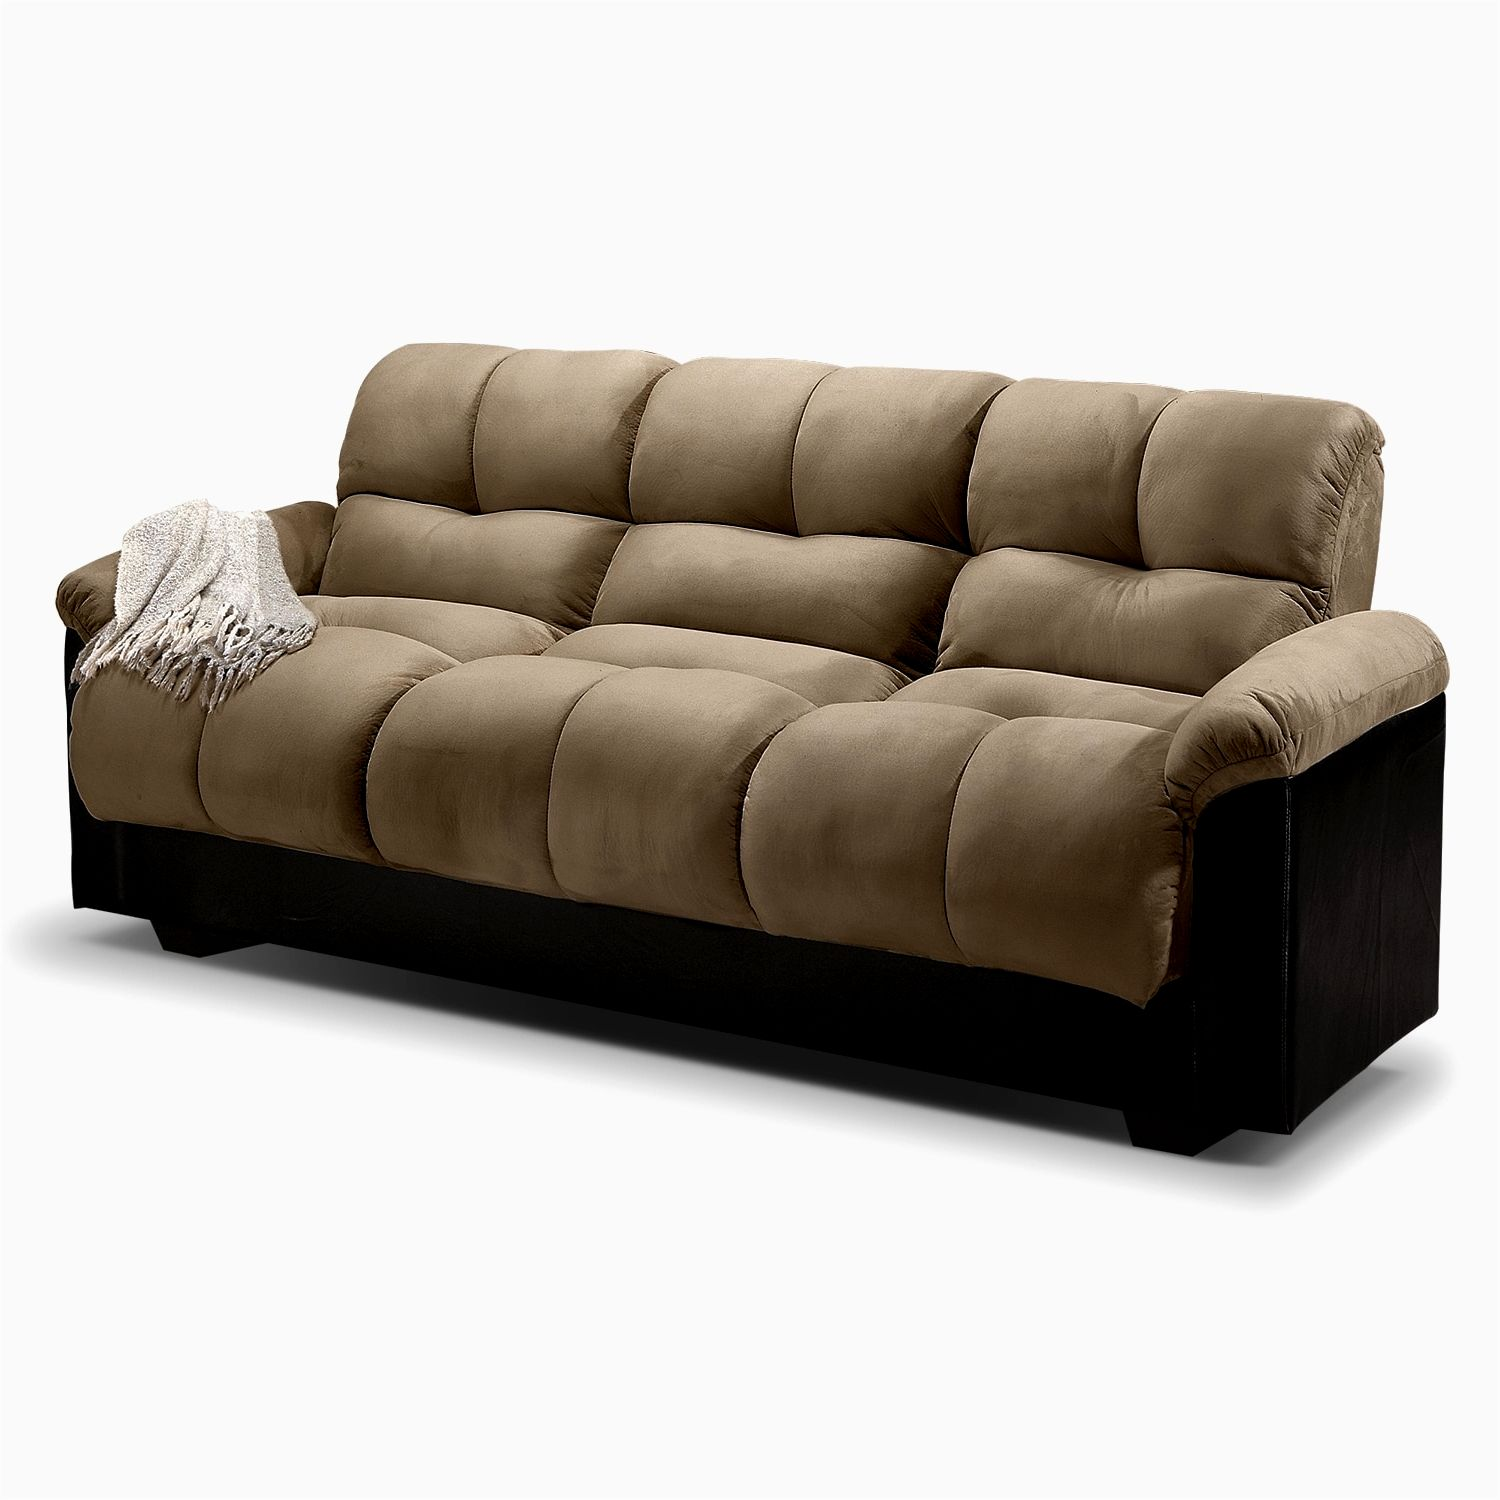 beautiful convertible sofa bed with storage ideas-Cool Convertible sofa Bed with Storage Layout